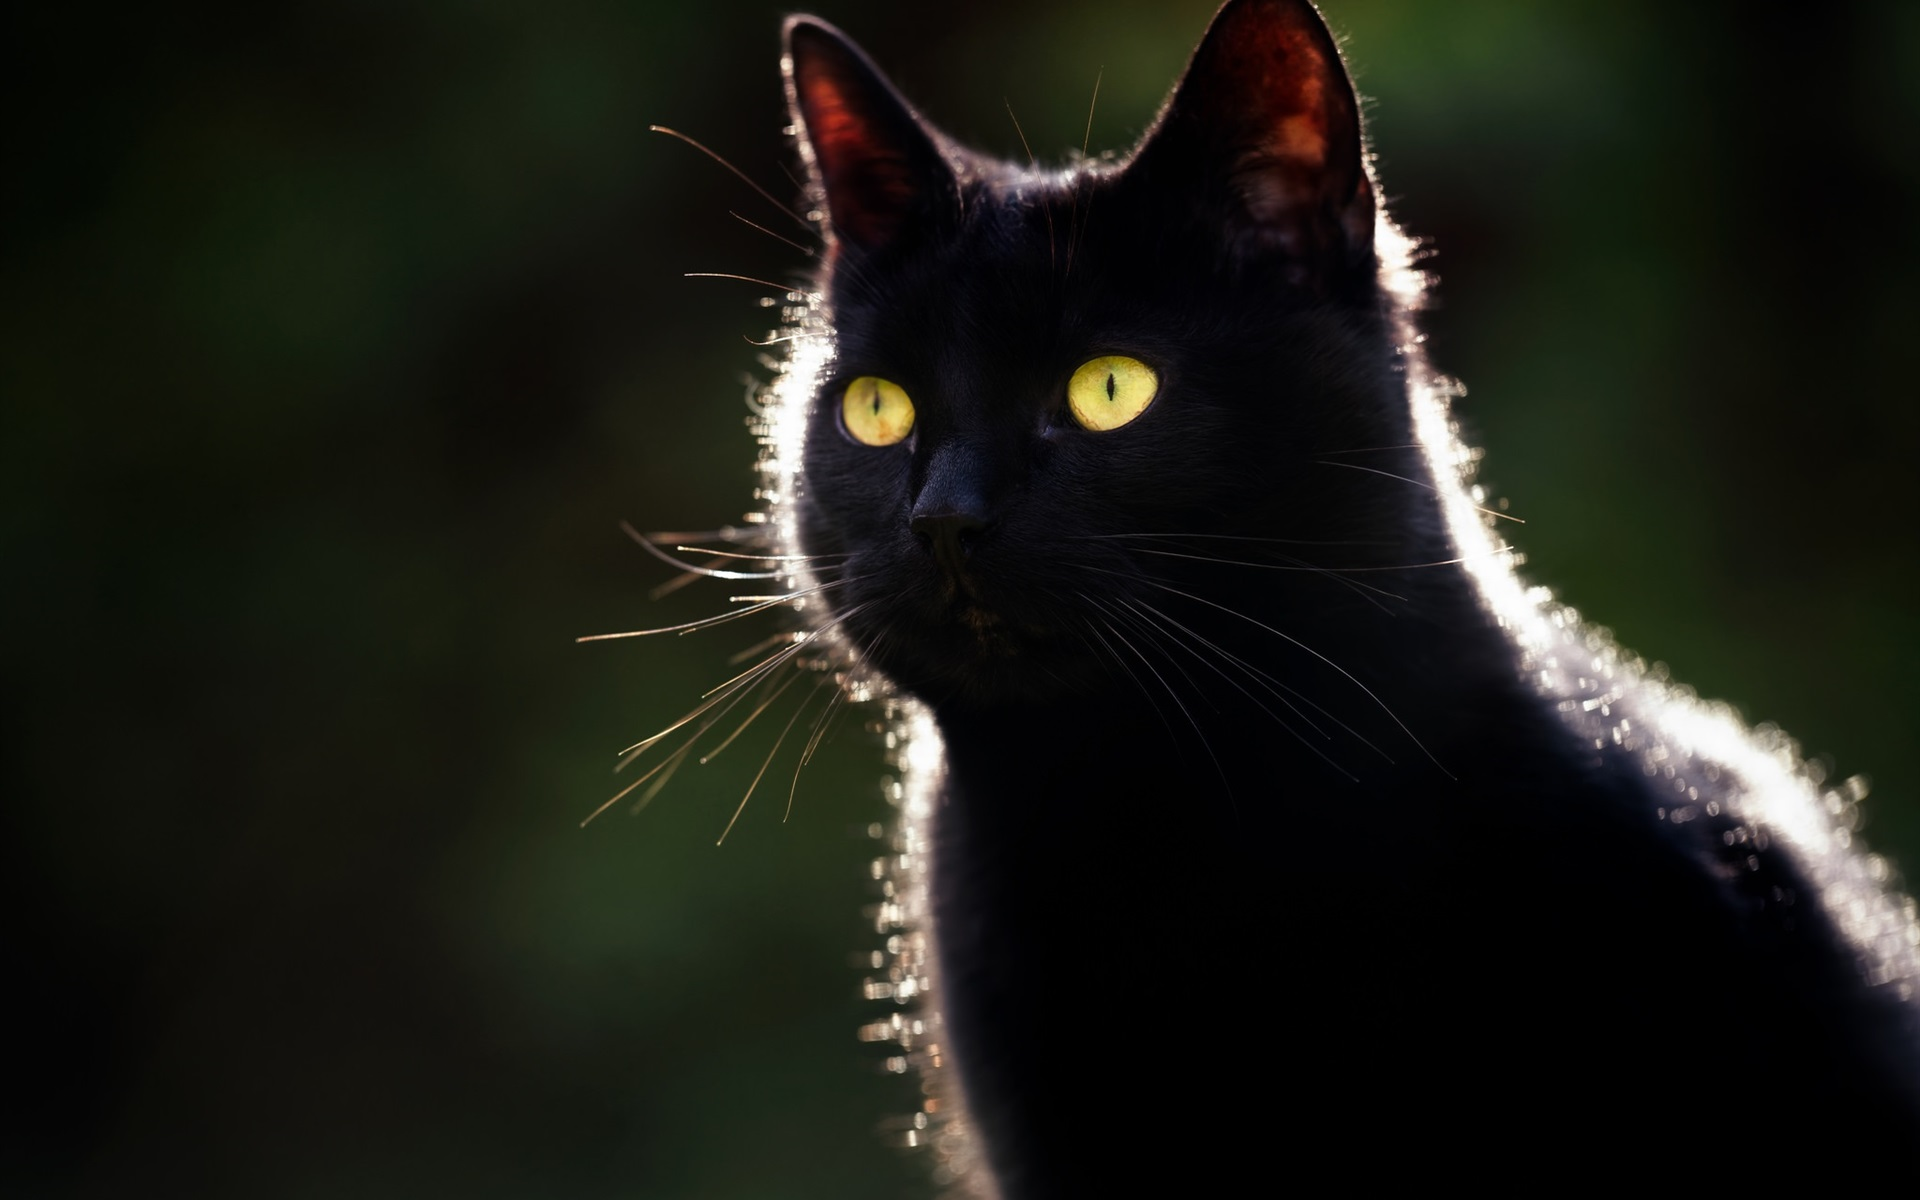 Wallpaper Black Cat Yellow Eyes Backlight Dark Background